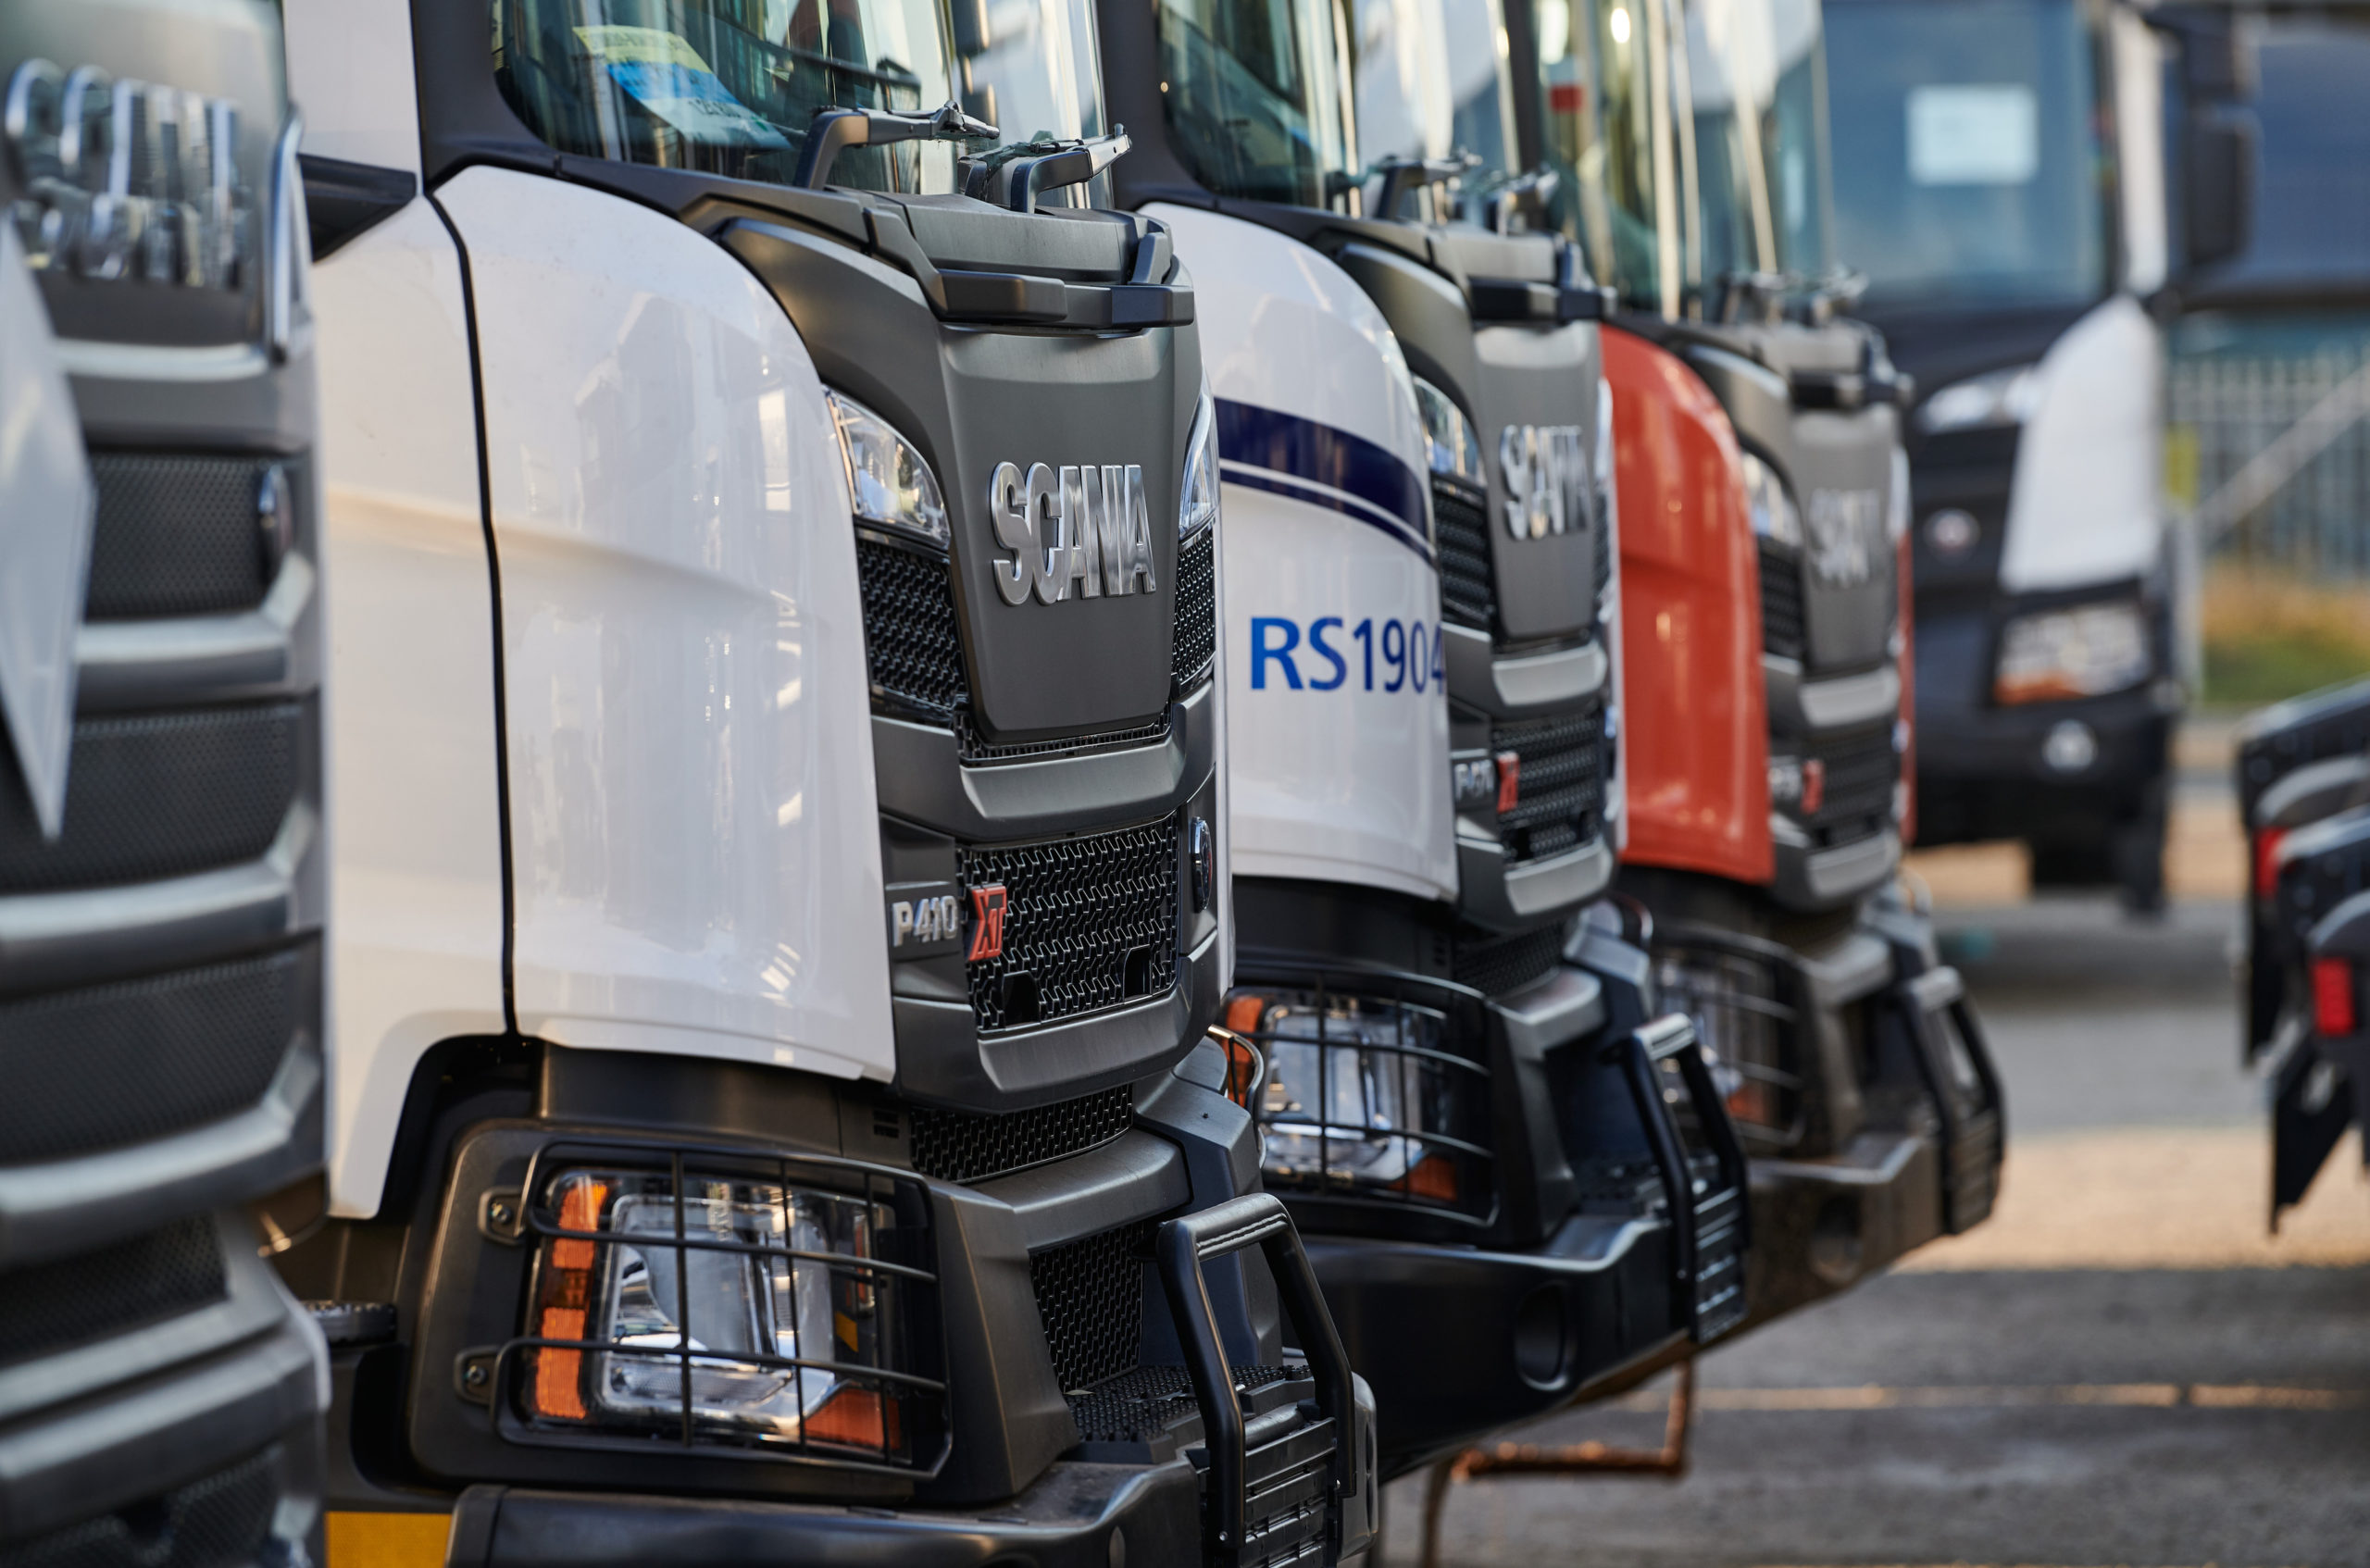 It's total cost of ownership redefined, and Scania South Africa sees it as a game-changer that will help their customers find a sustainable revenue increase while their competitors continue to struggle with high operating costs.